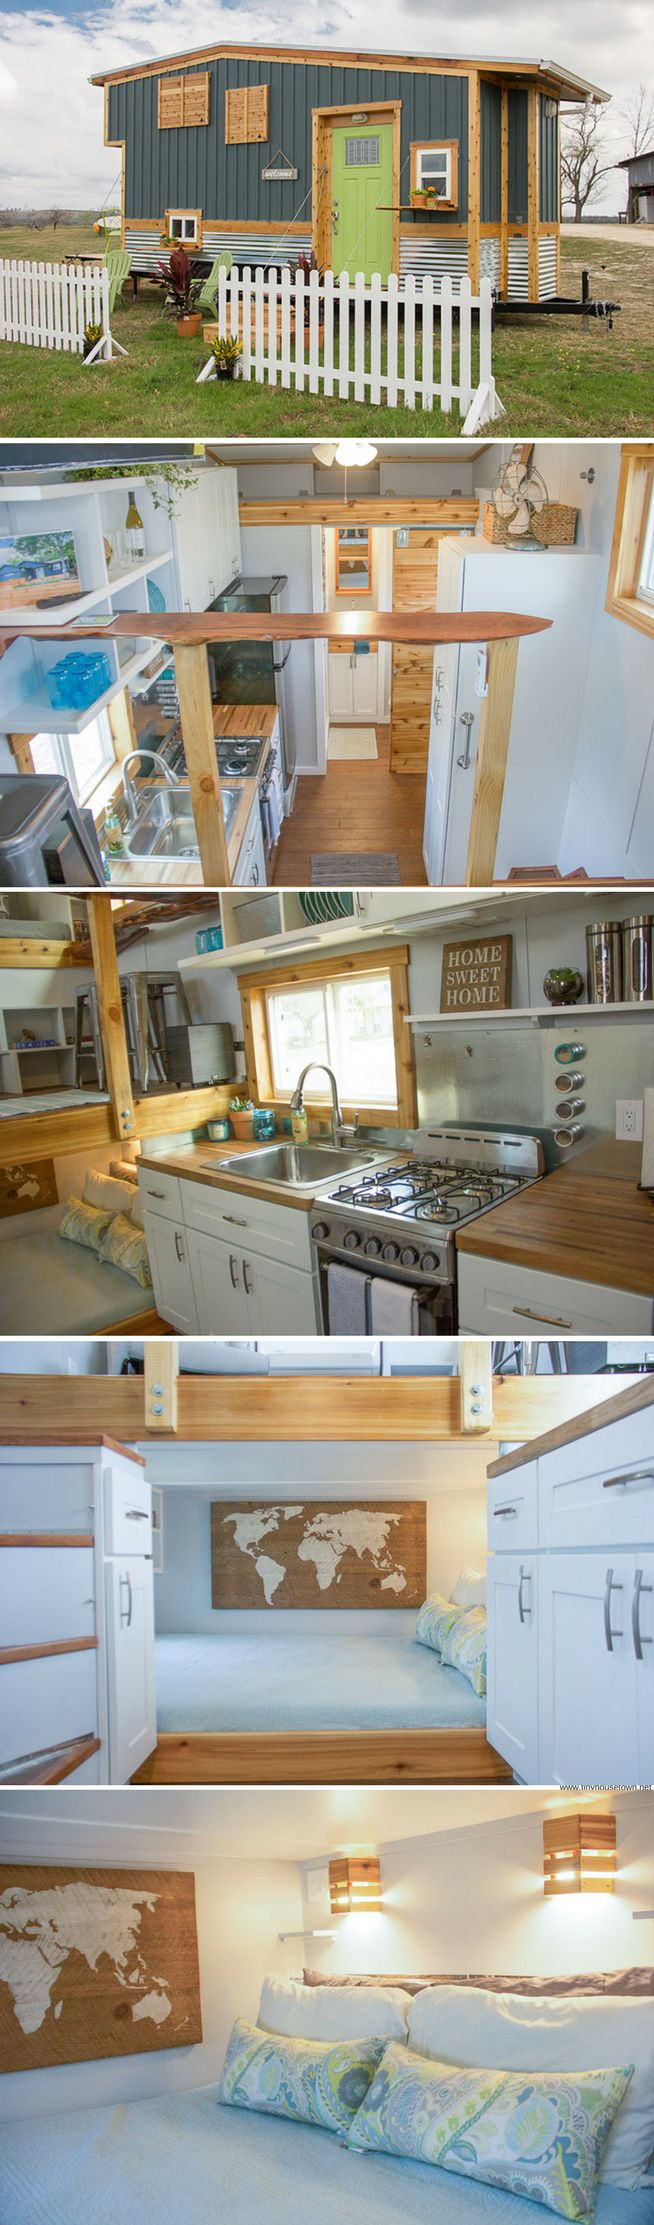 The Homestead by Raw Design Creative (210 sq ft)